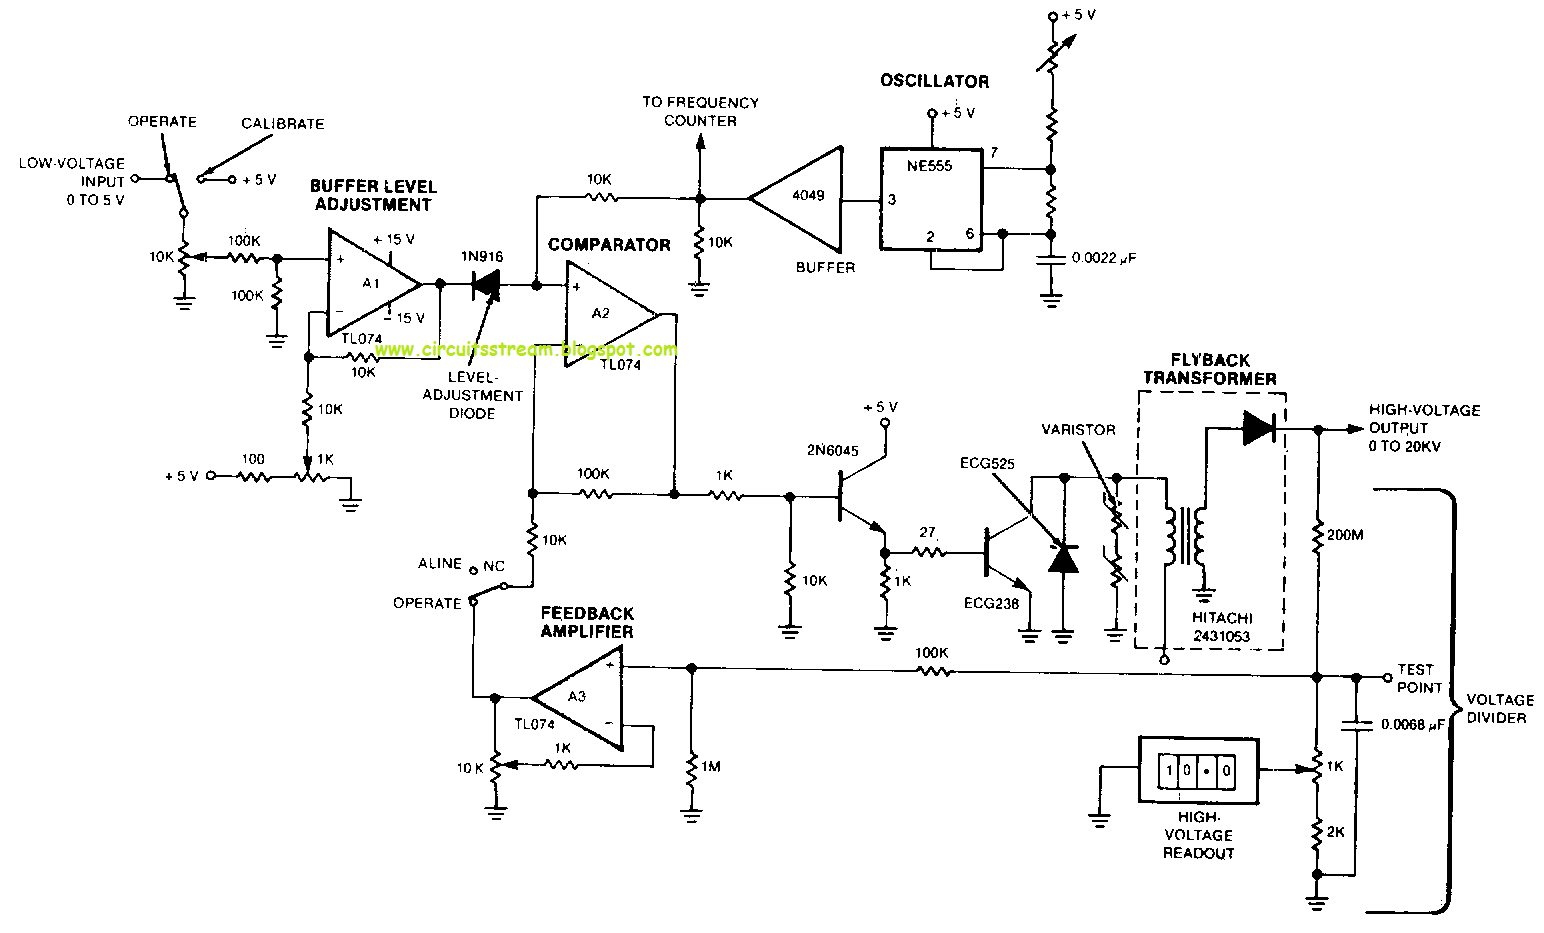 high voltage circuit diagram 1995 ford mustang gt wiring build a remotely adjustable solid state